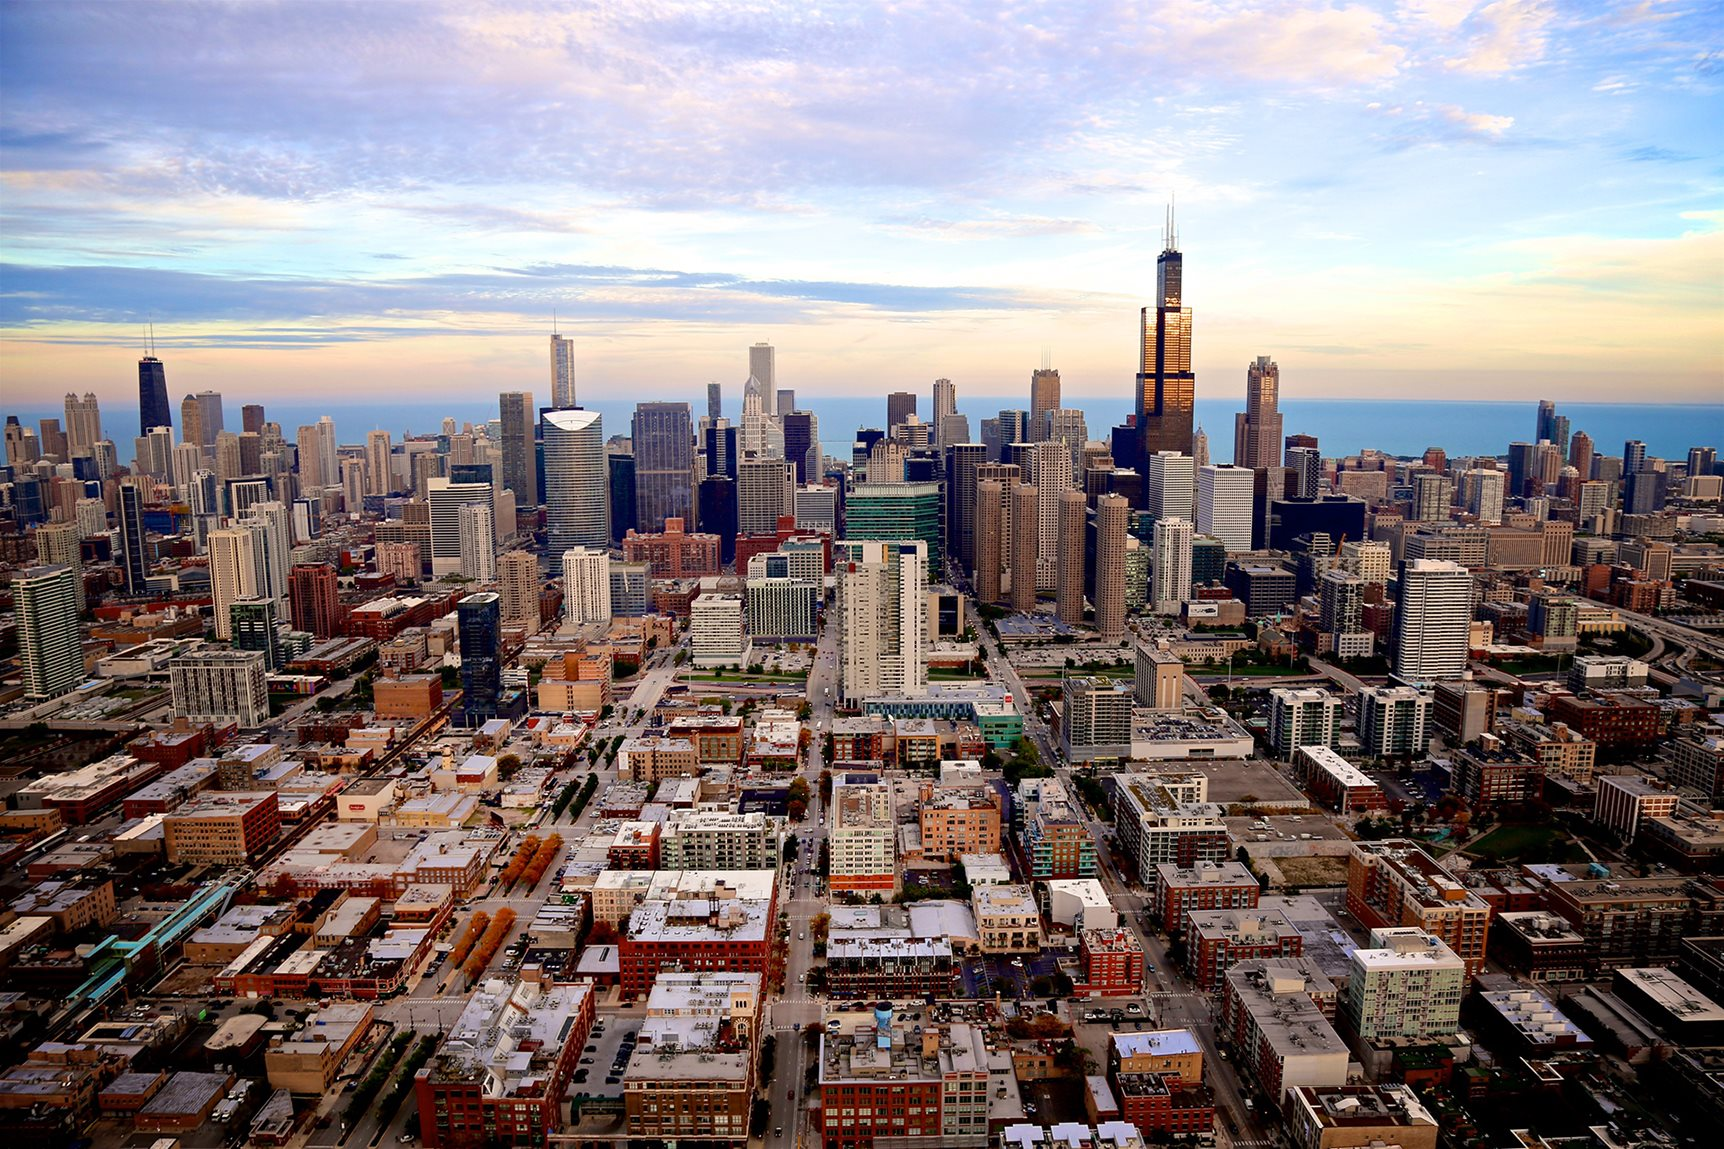 Aerial image of Fulton Market District